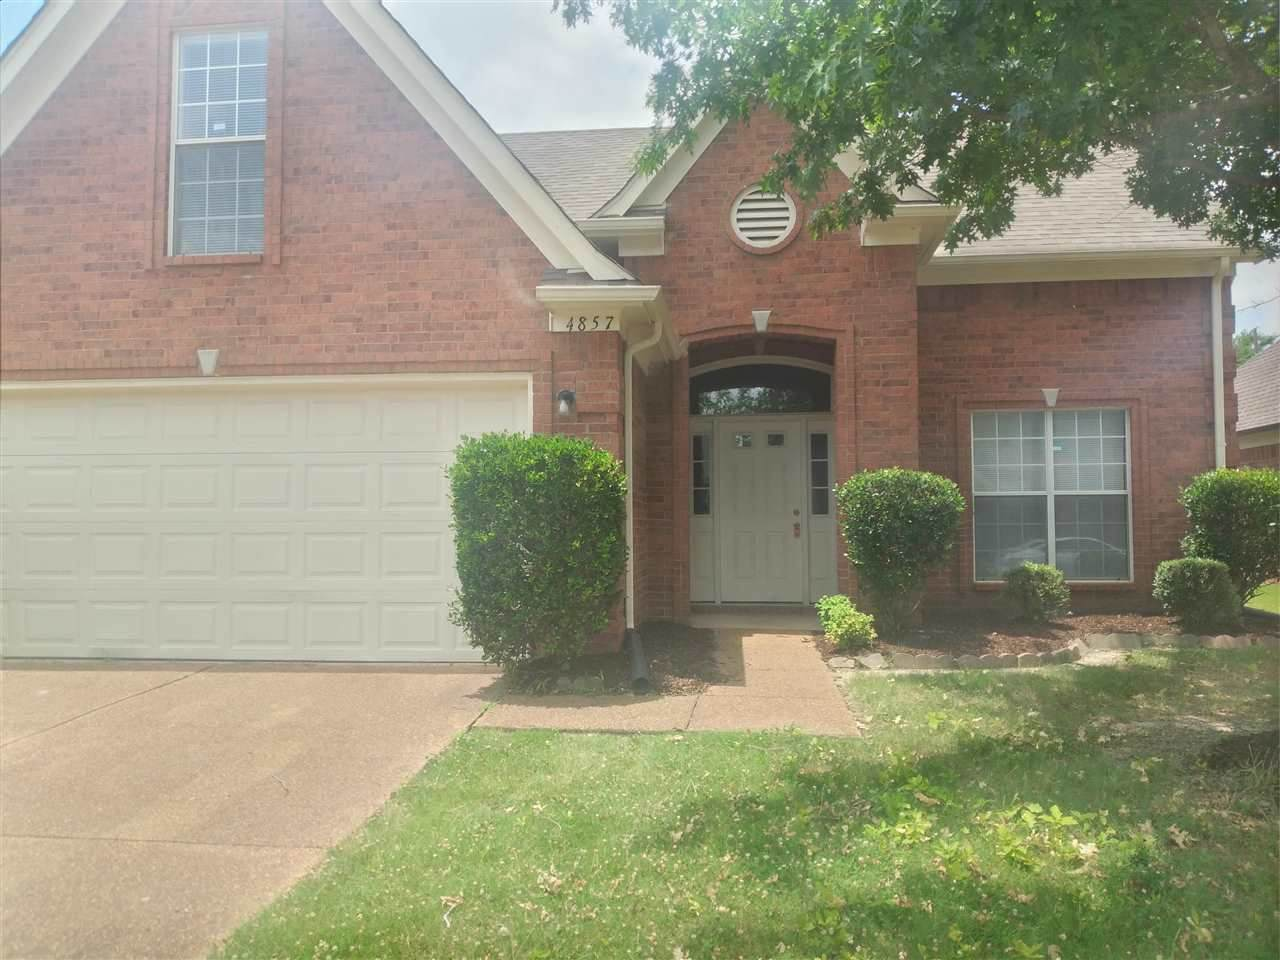 4857 Bloomfield Dr - Photo 1